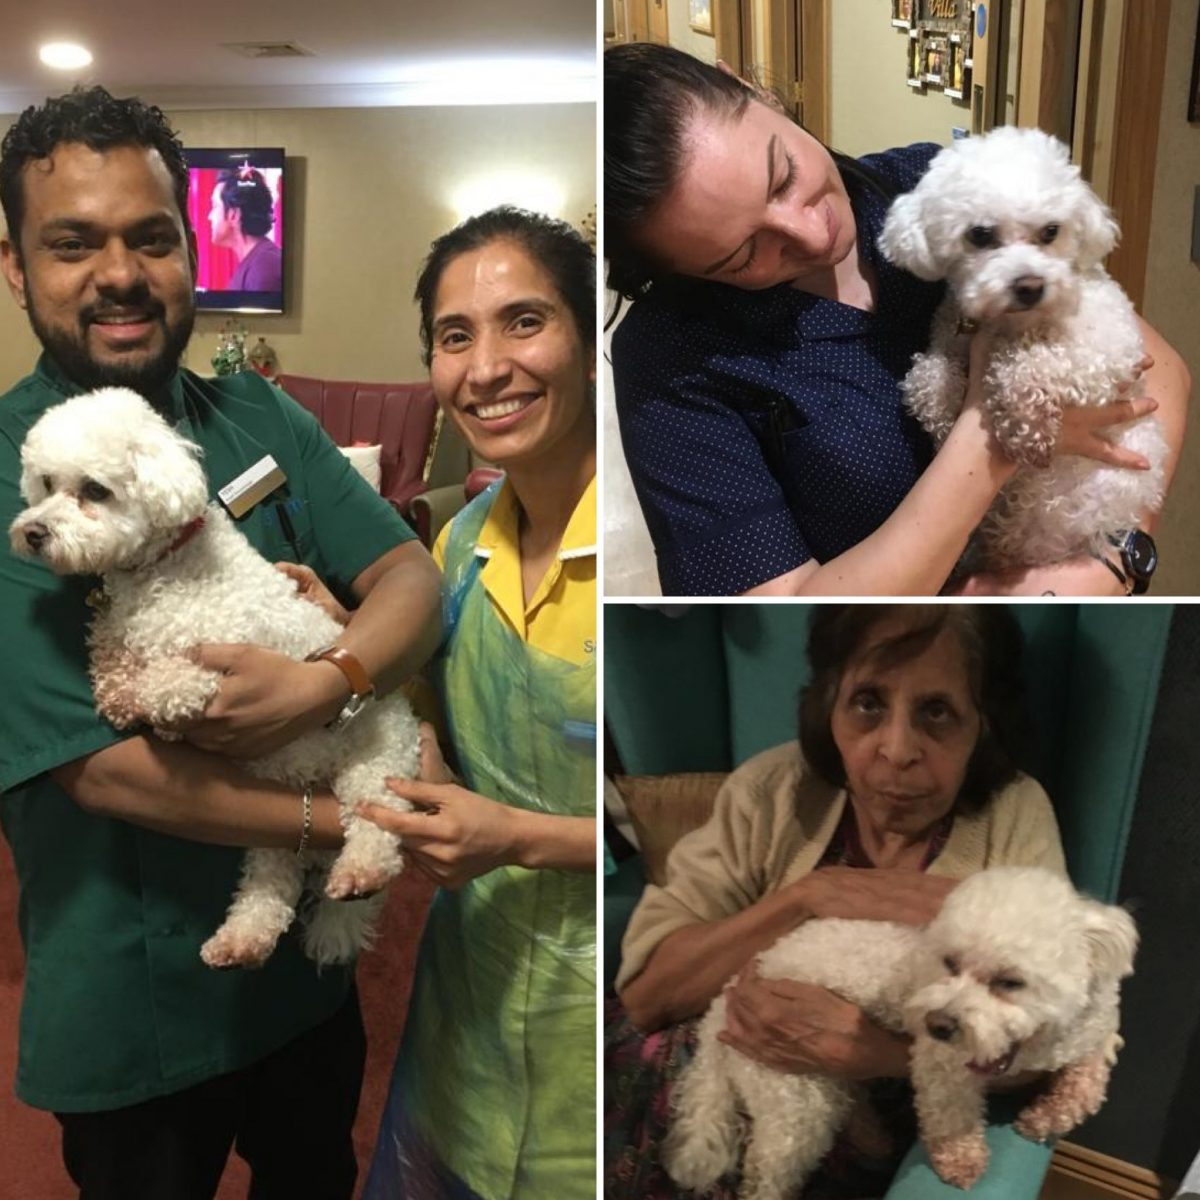 A little furry friend comes to visit residents and team members at Sairam Villa Care Home in Harrow